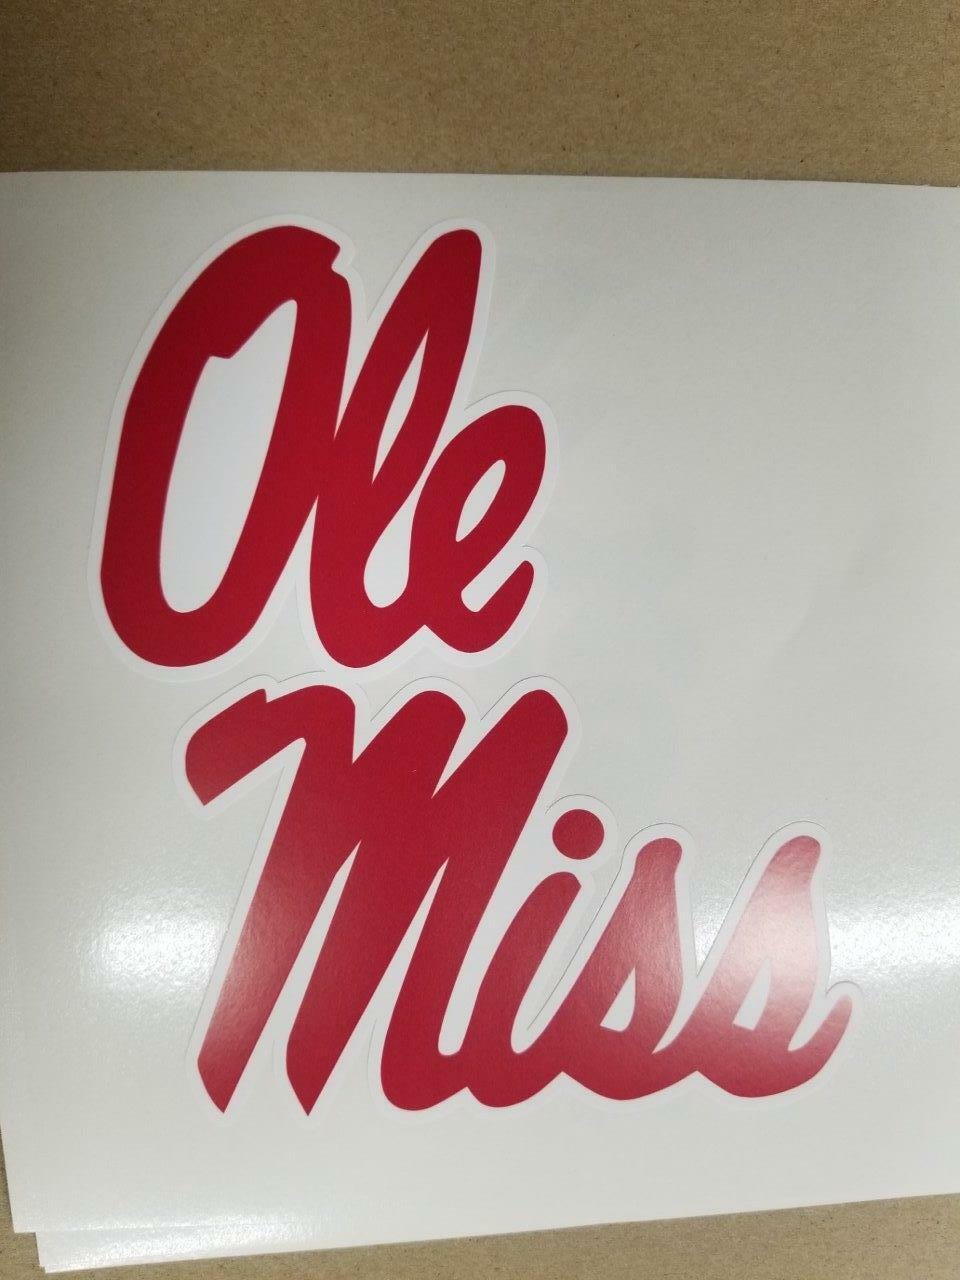 Ole Miss cornhole board or vehicle decal(s)  OM1